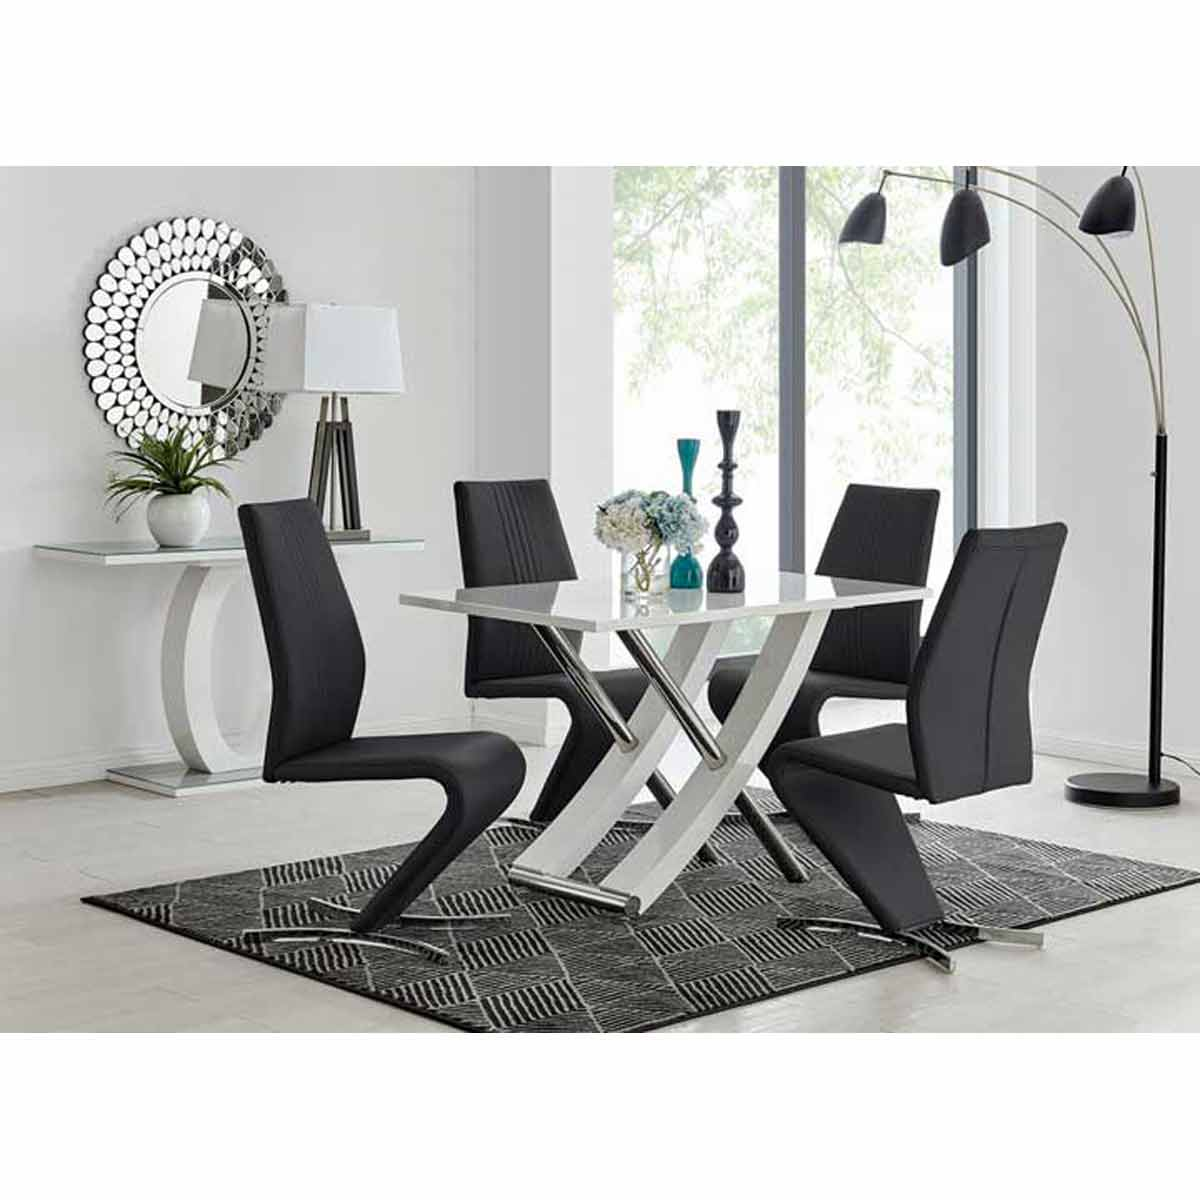 Furniture Box Mayfair 4 Seater White High Gloss And Stainless Steel Dining Table And 4 Black Luxury Willow Chairs Set